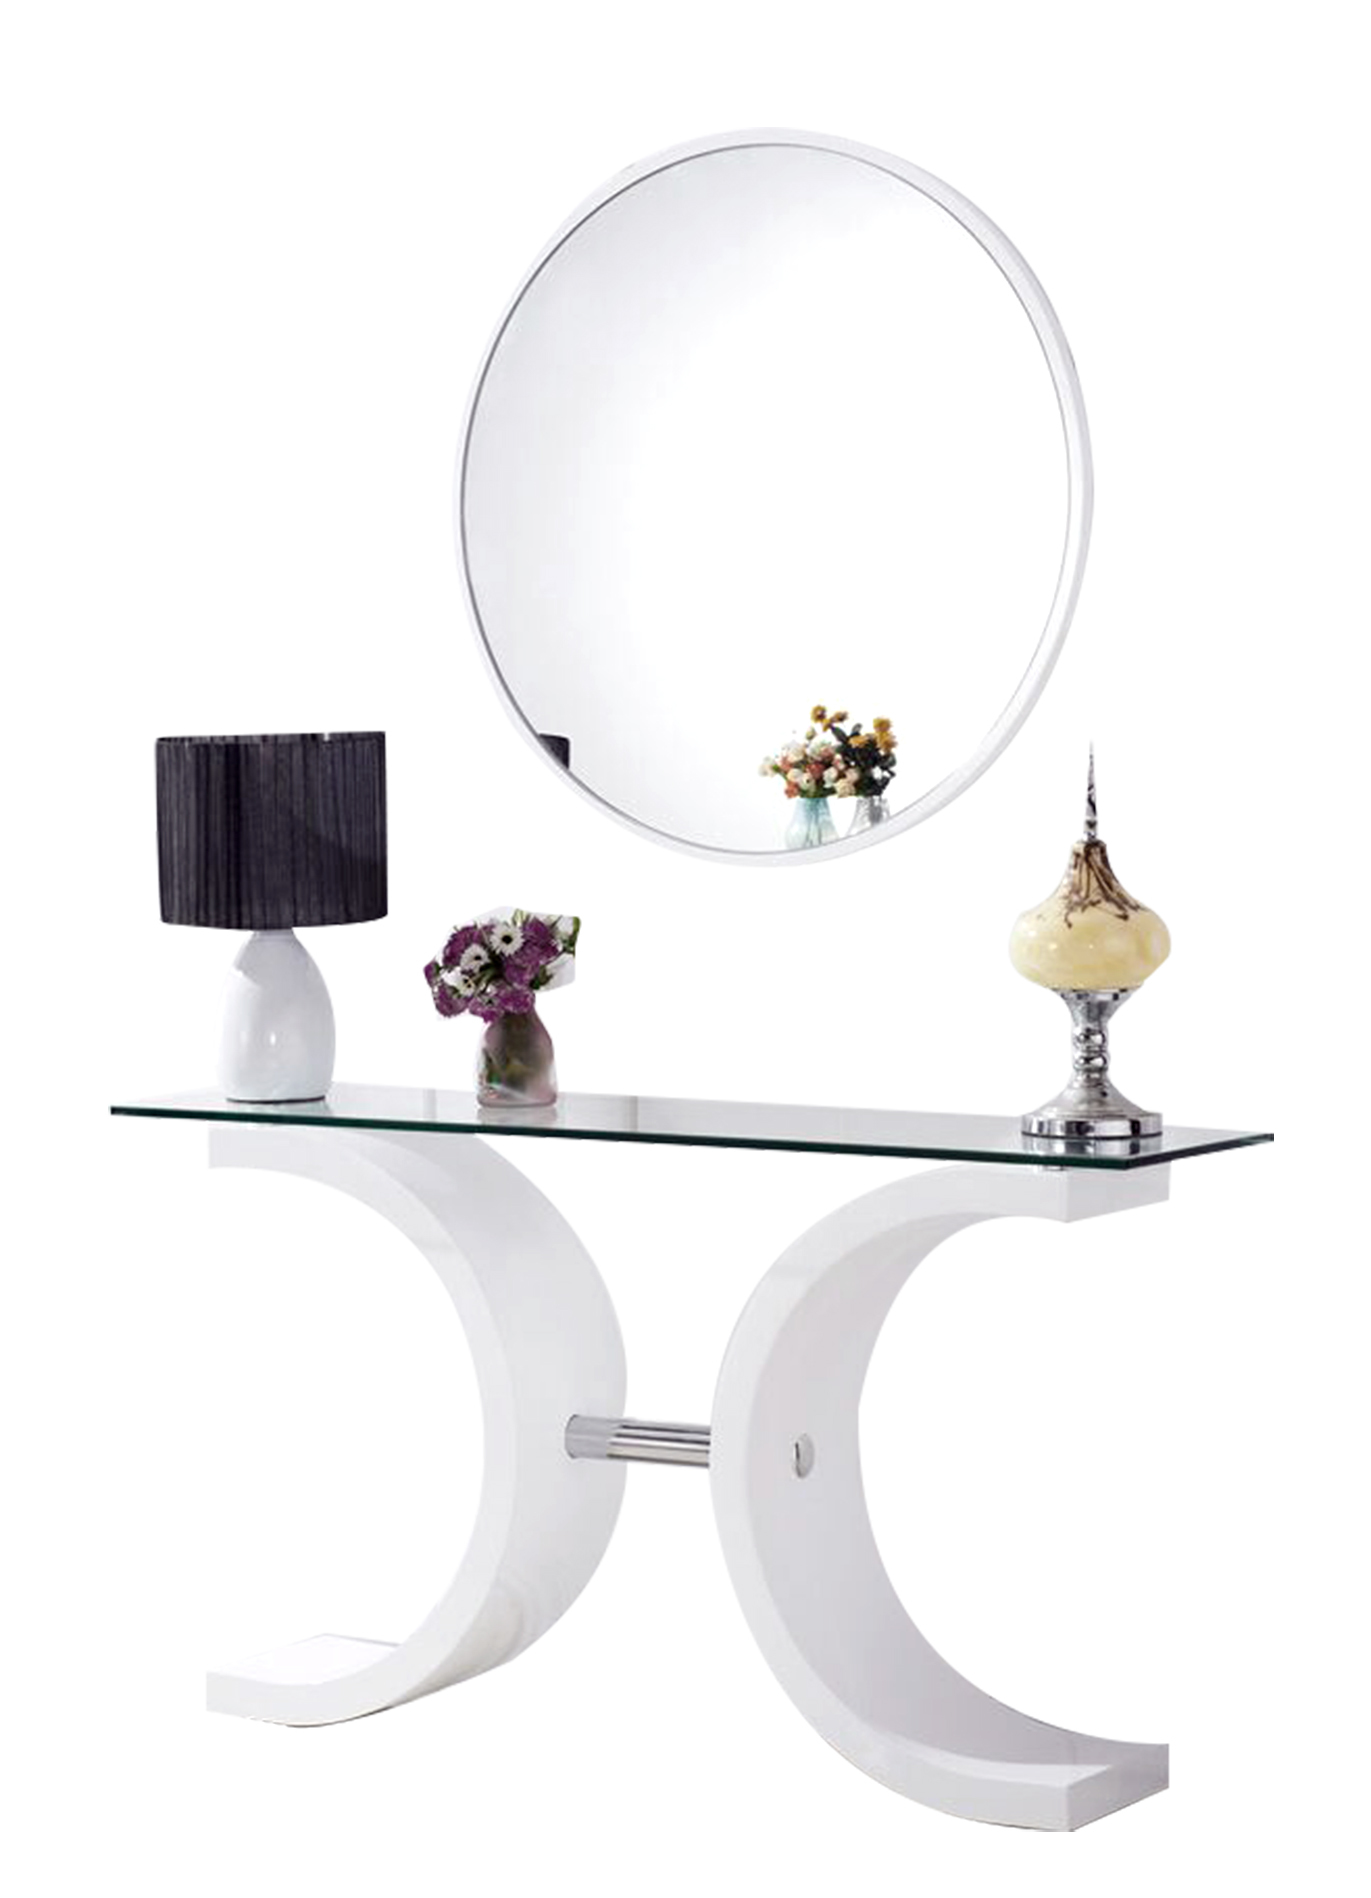 console table + mirror 6768.jpg